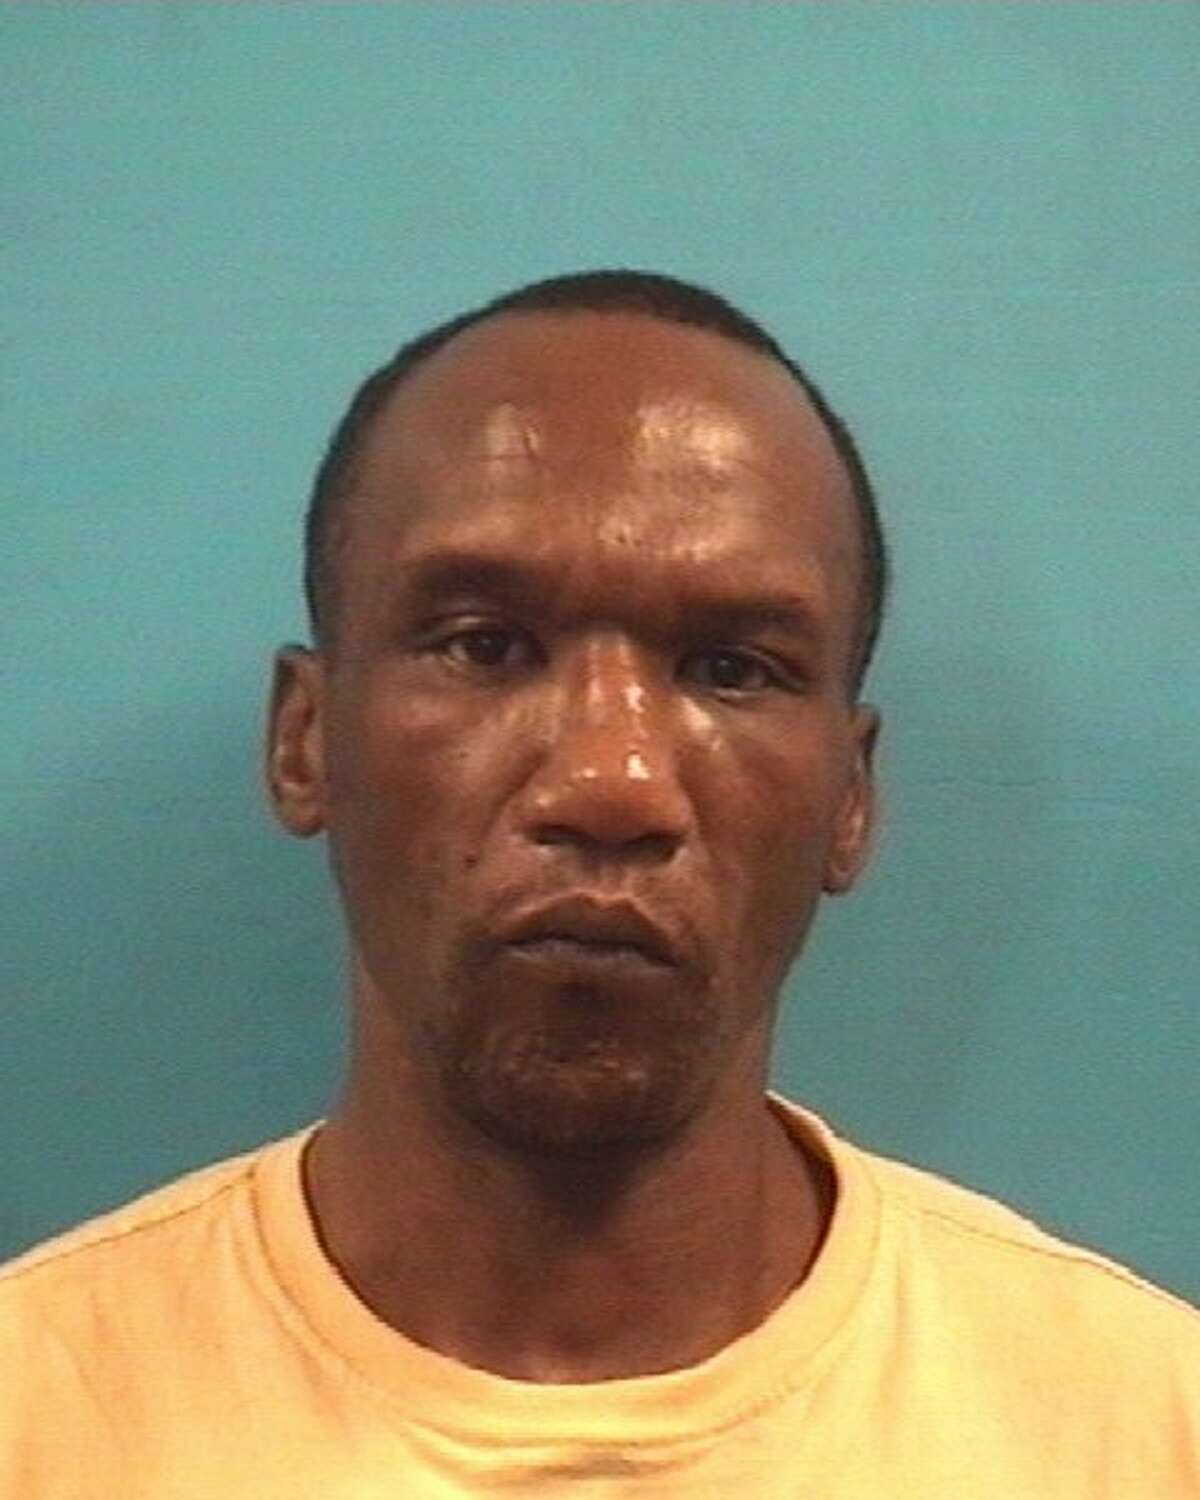 Houston-resident Broderick Renalda French, 44, was arrested and charged with burglary of a vehicle after he allegedly stole a woman's purse as she was putting gas in her car.